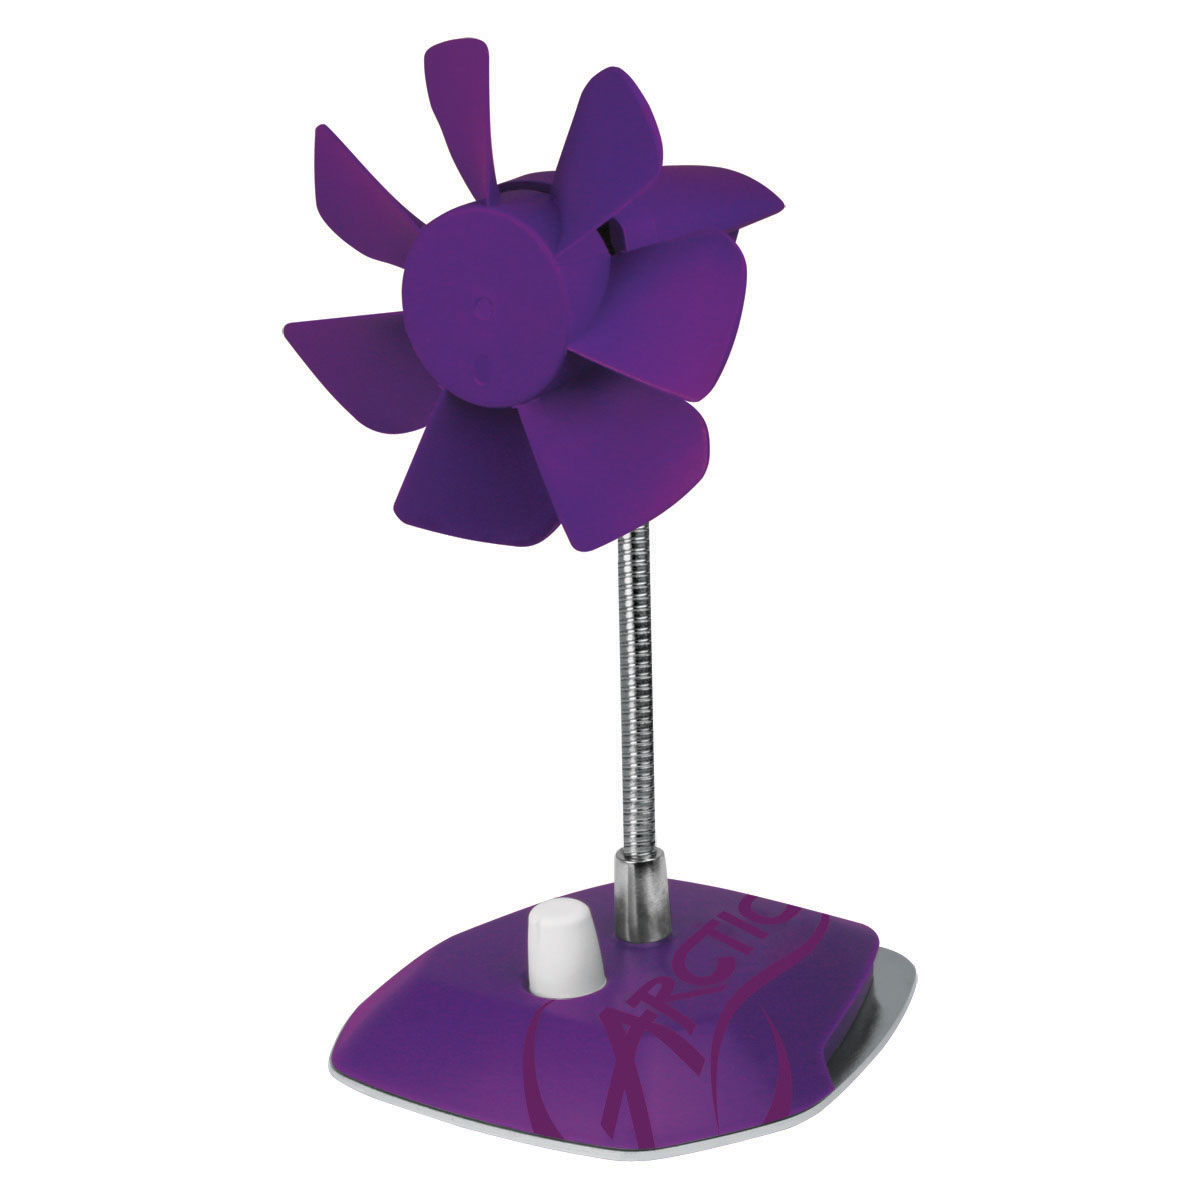 ABACO-BRZPP01-BL ARCTIC Breeze Color Edition PURPLE - USB desktop fan